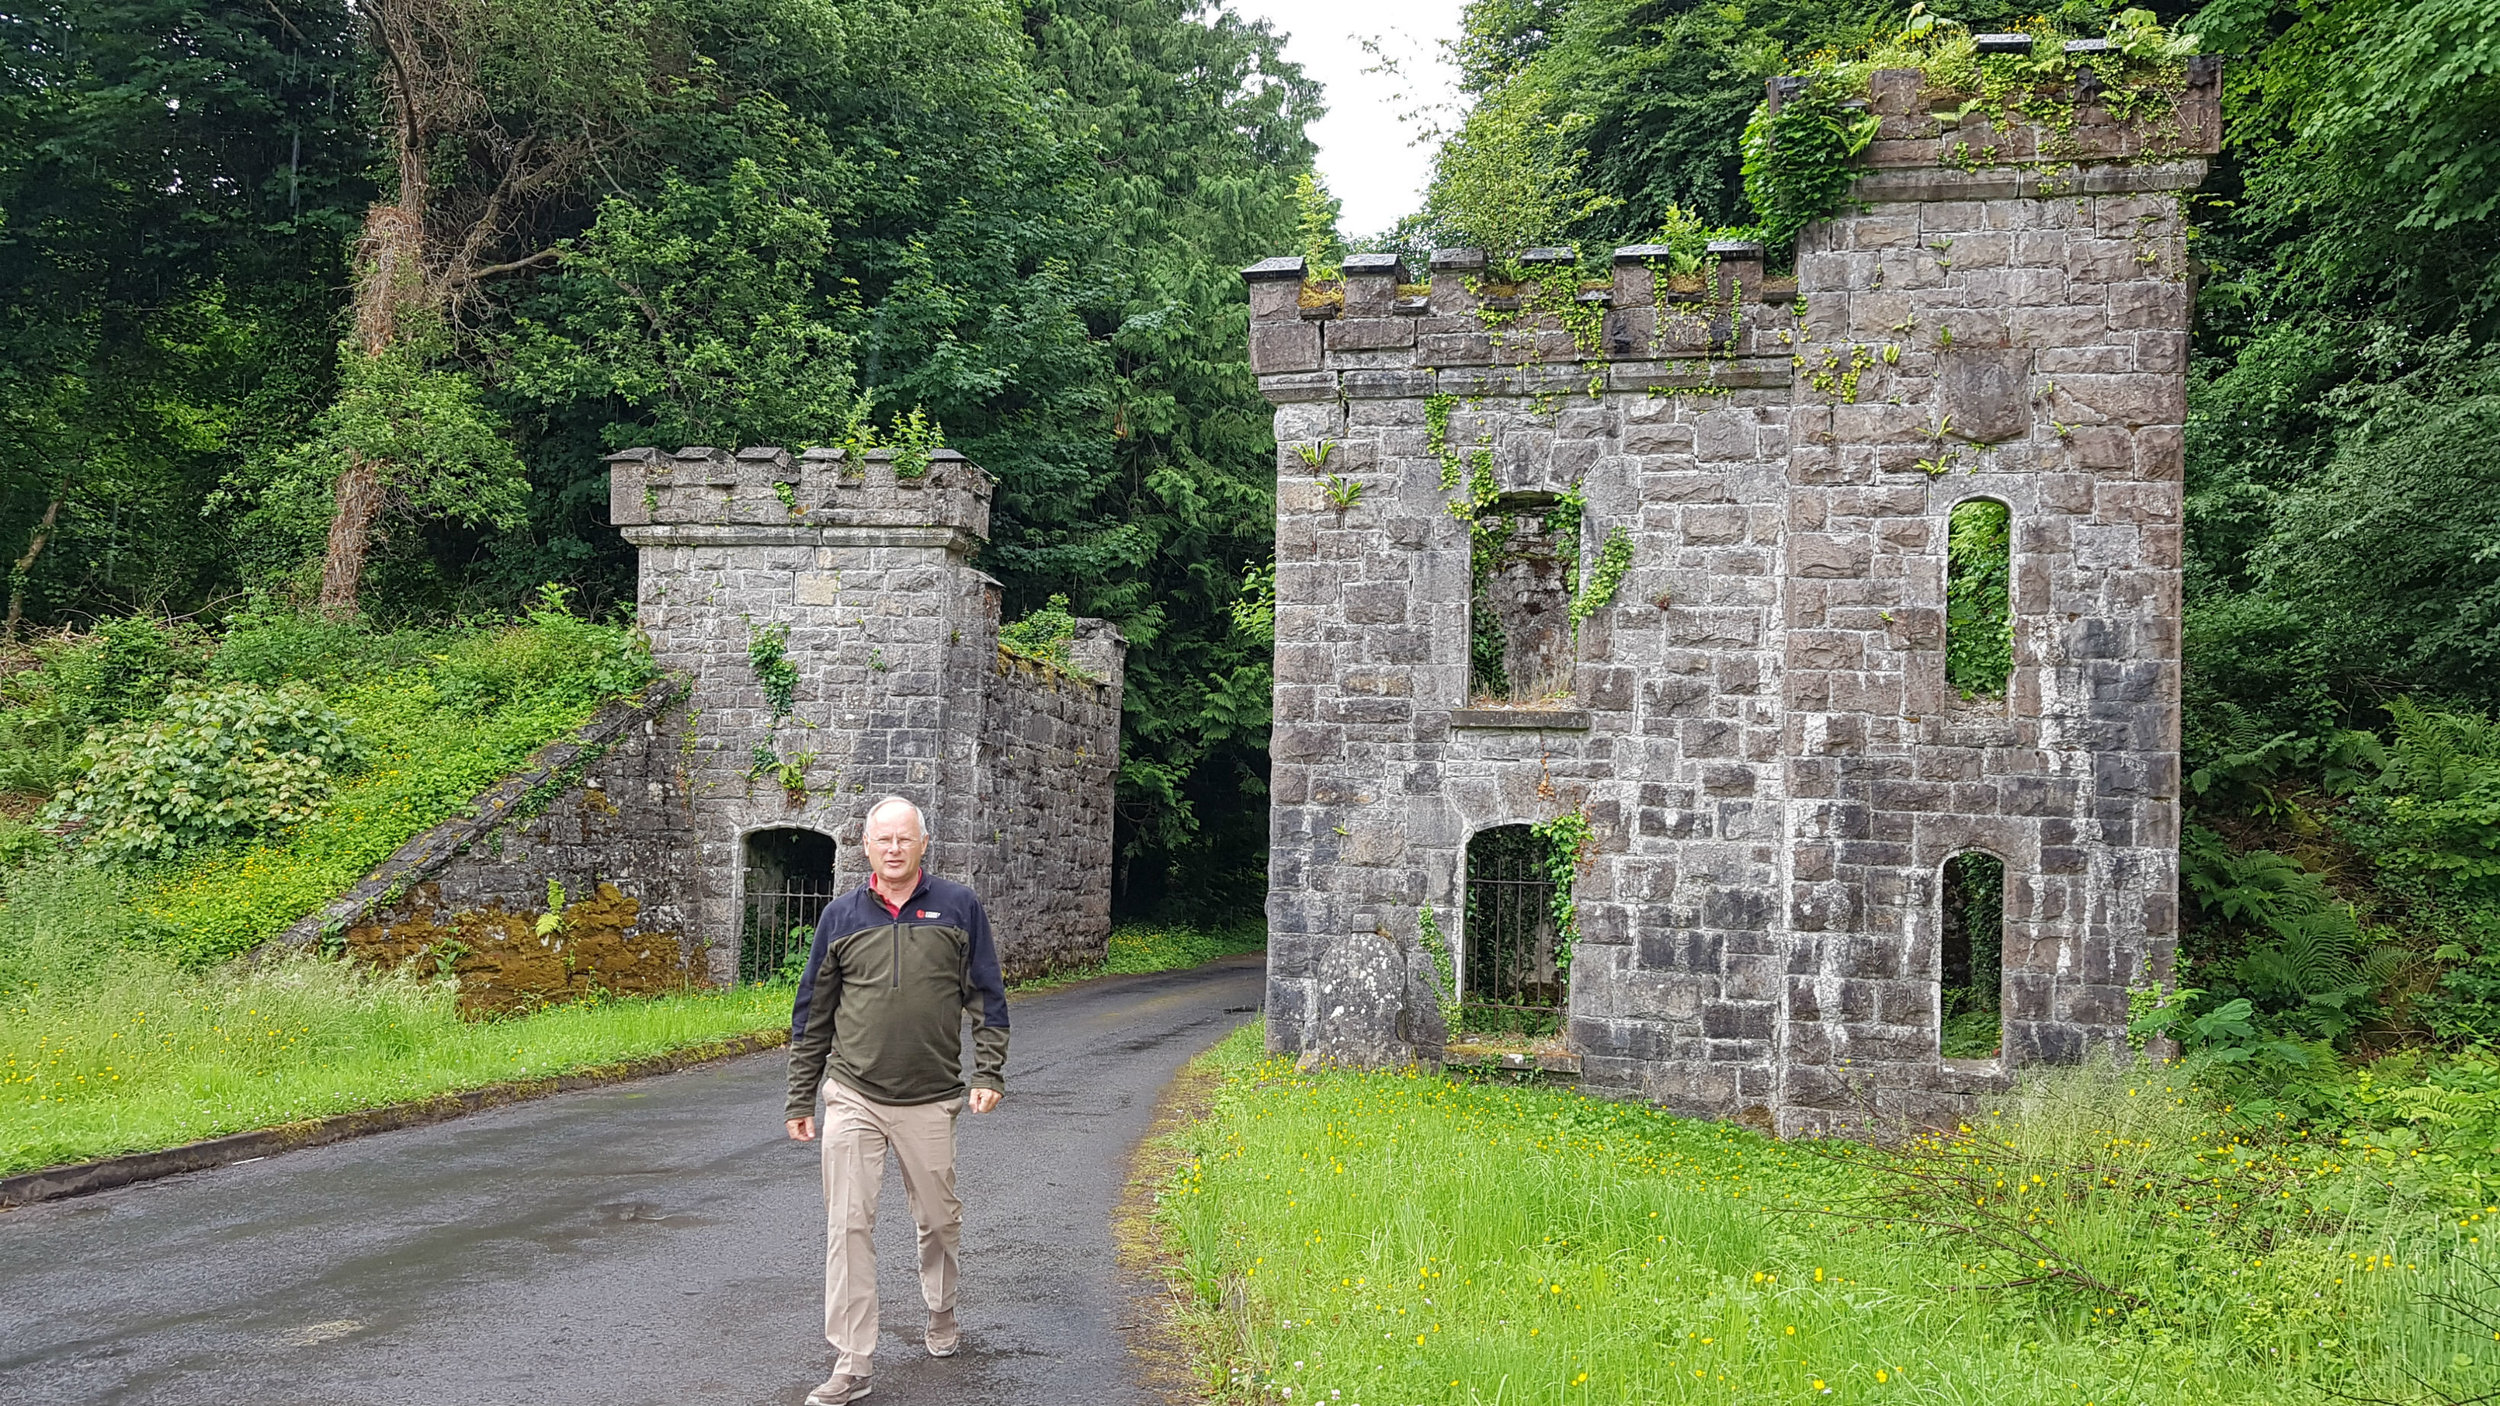 Gate to Castle Caldwell on Lough Erne